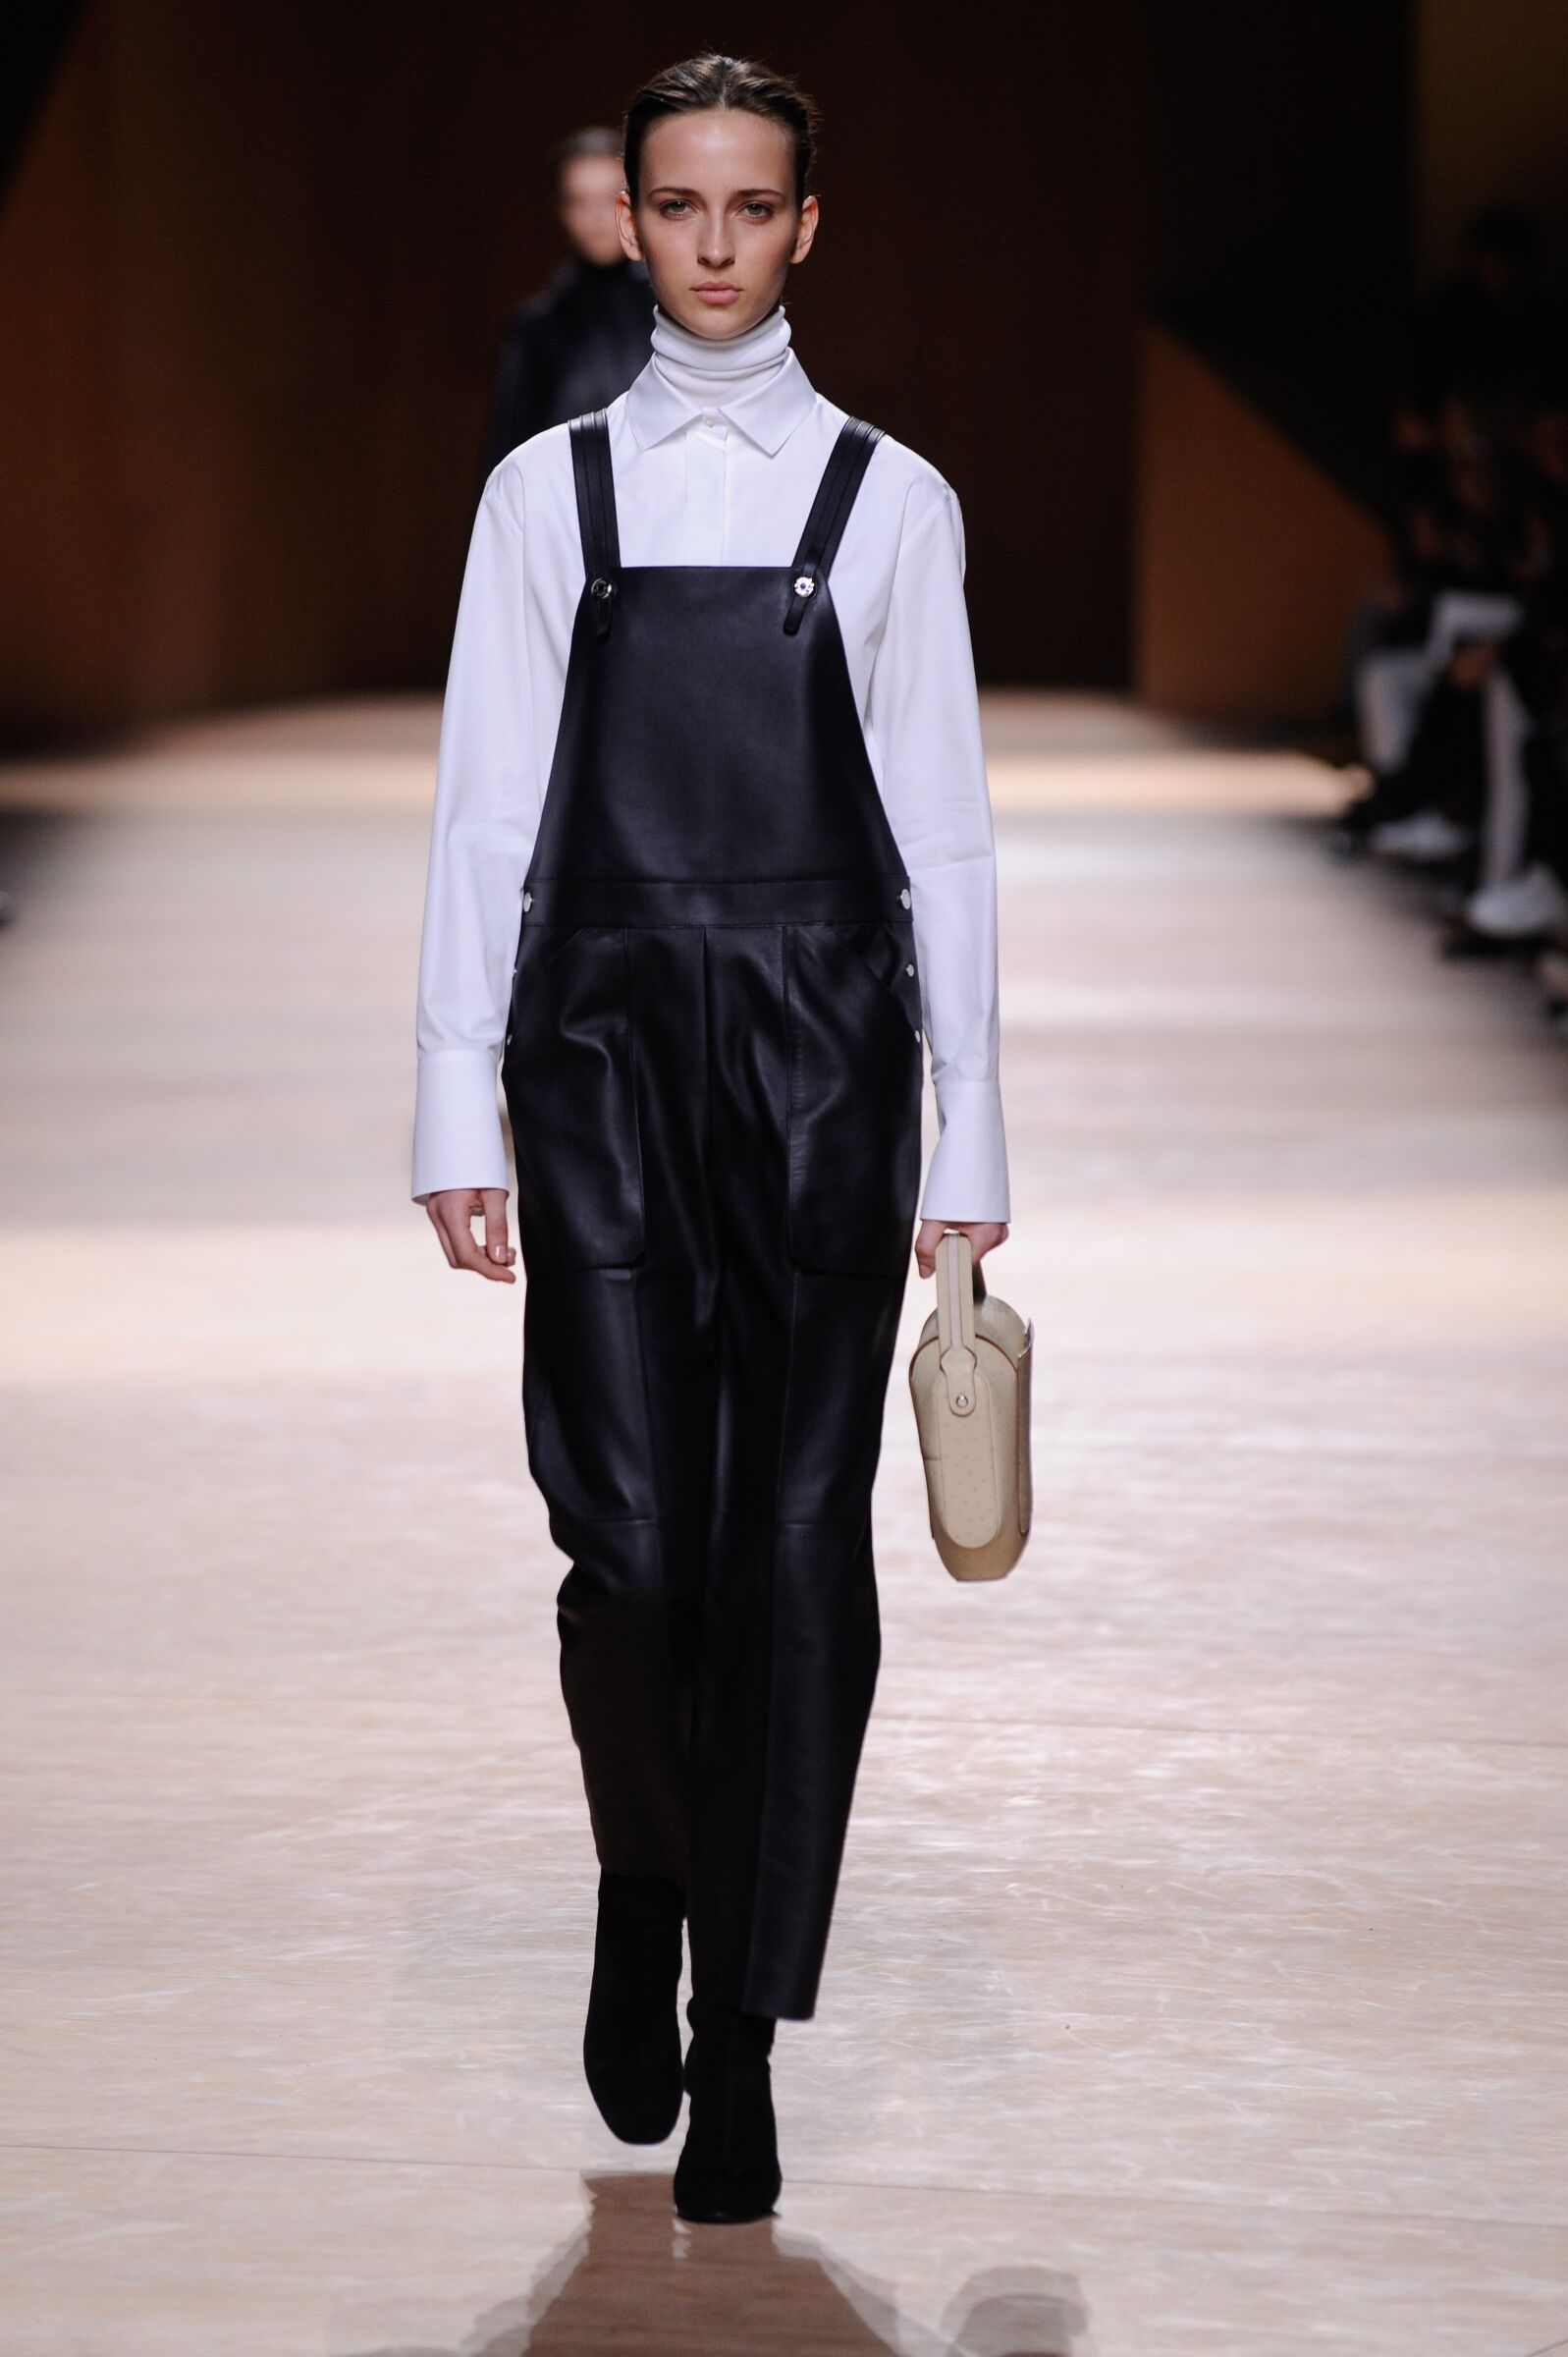 Winter 2015 Fashion Show Hermès Collection